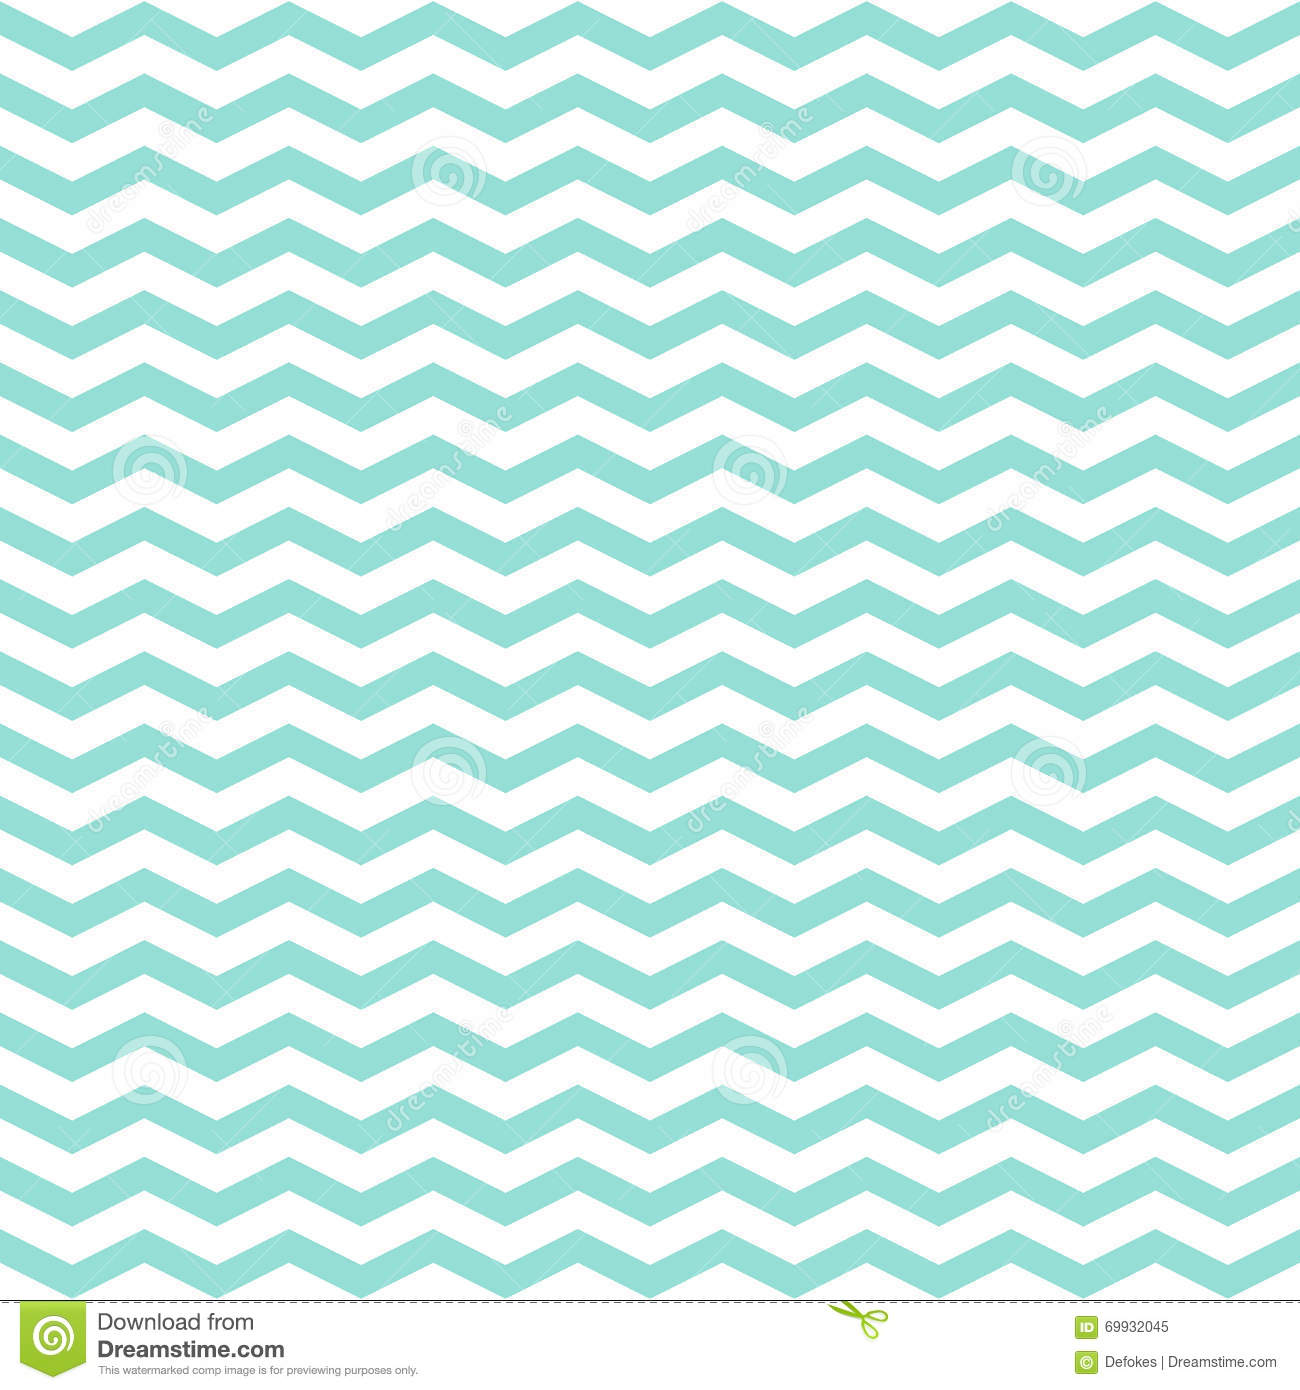 Cute Zig Zag Wallpapers Simple Modern Trendy Mint And White Zigzag Background